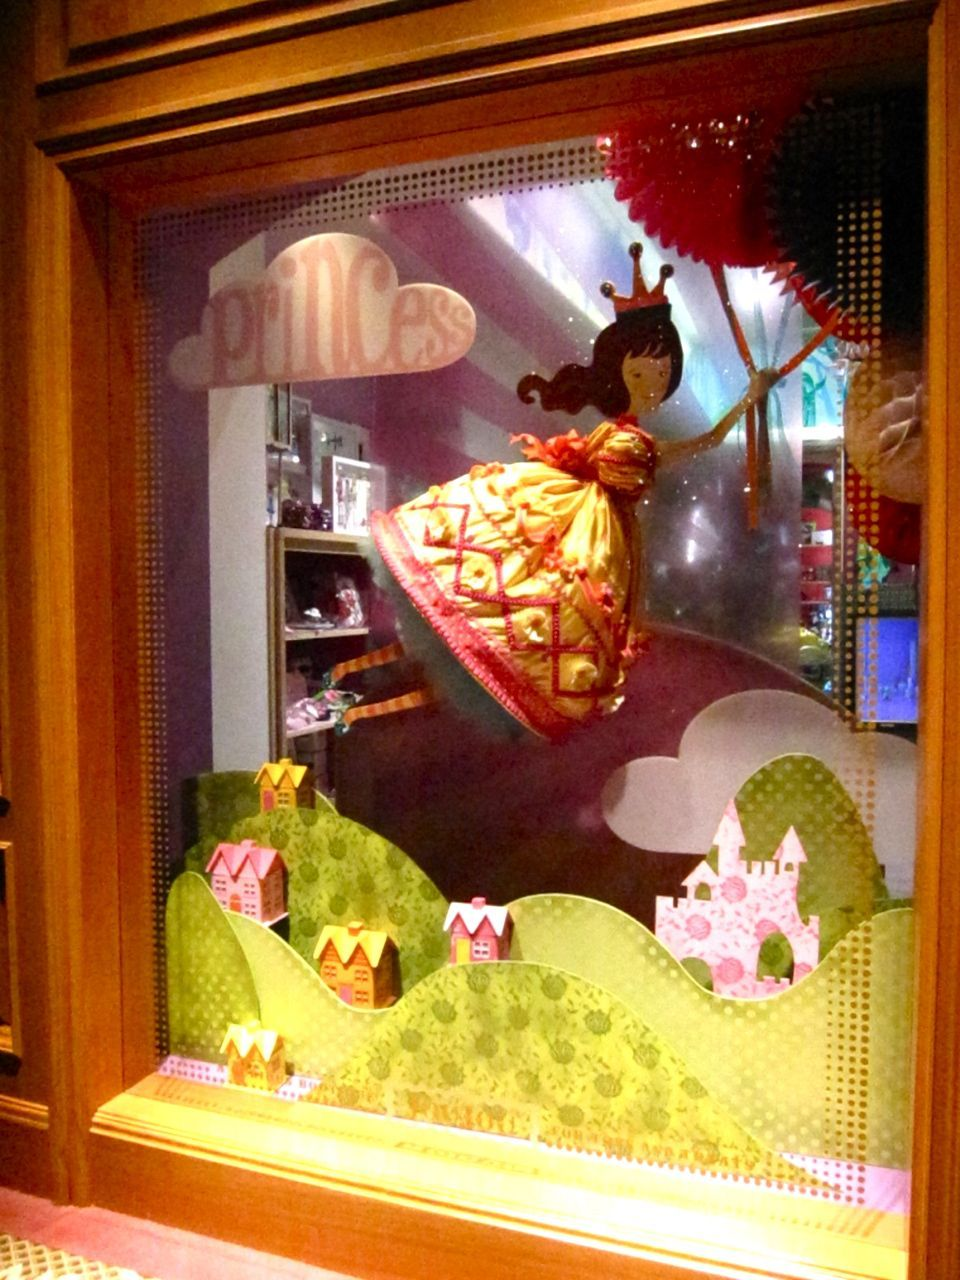 The Best Part Of The Fancy Hotel Store Window Displays